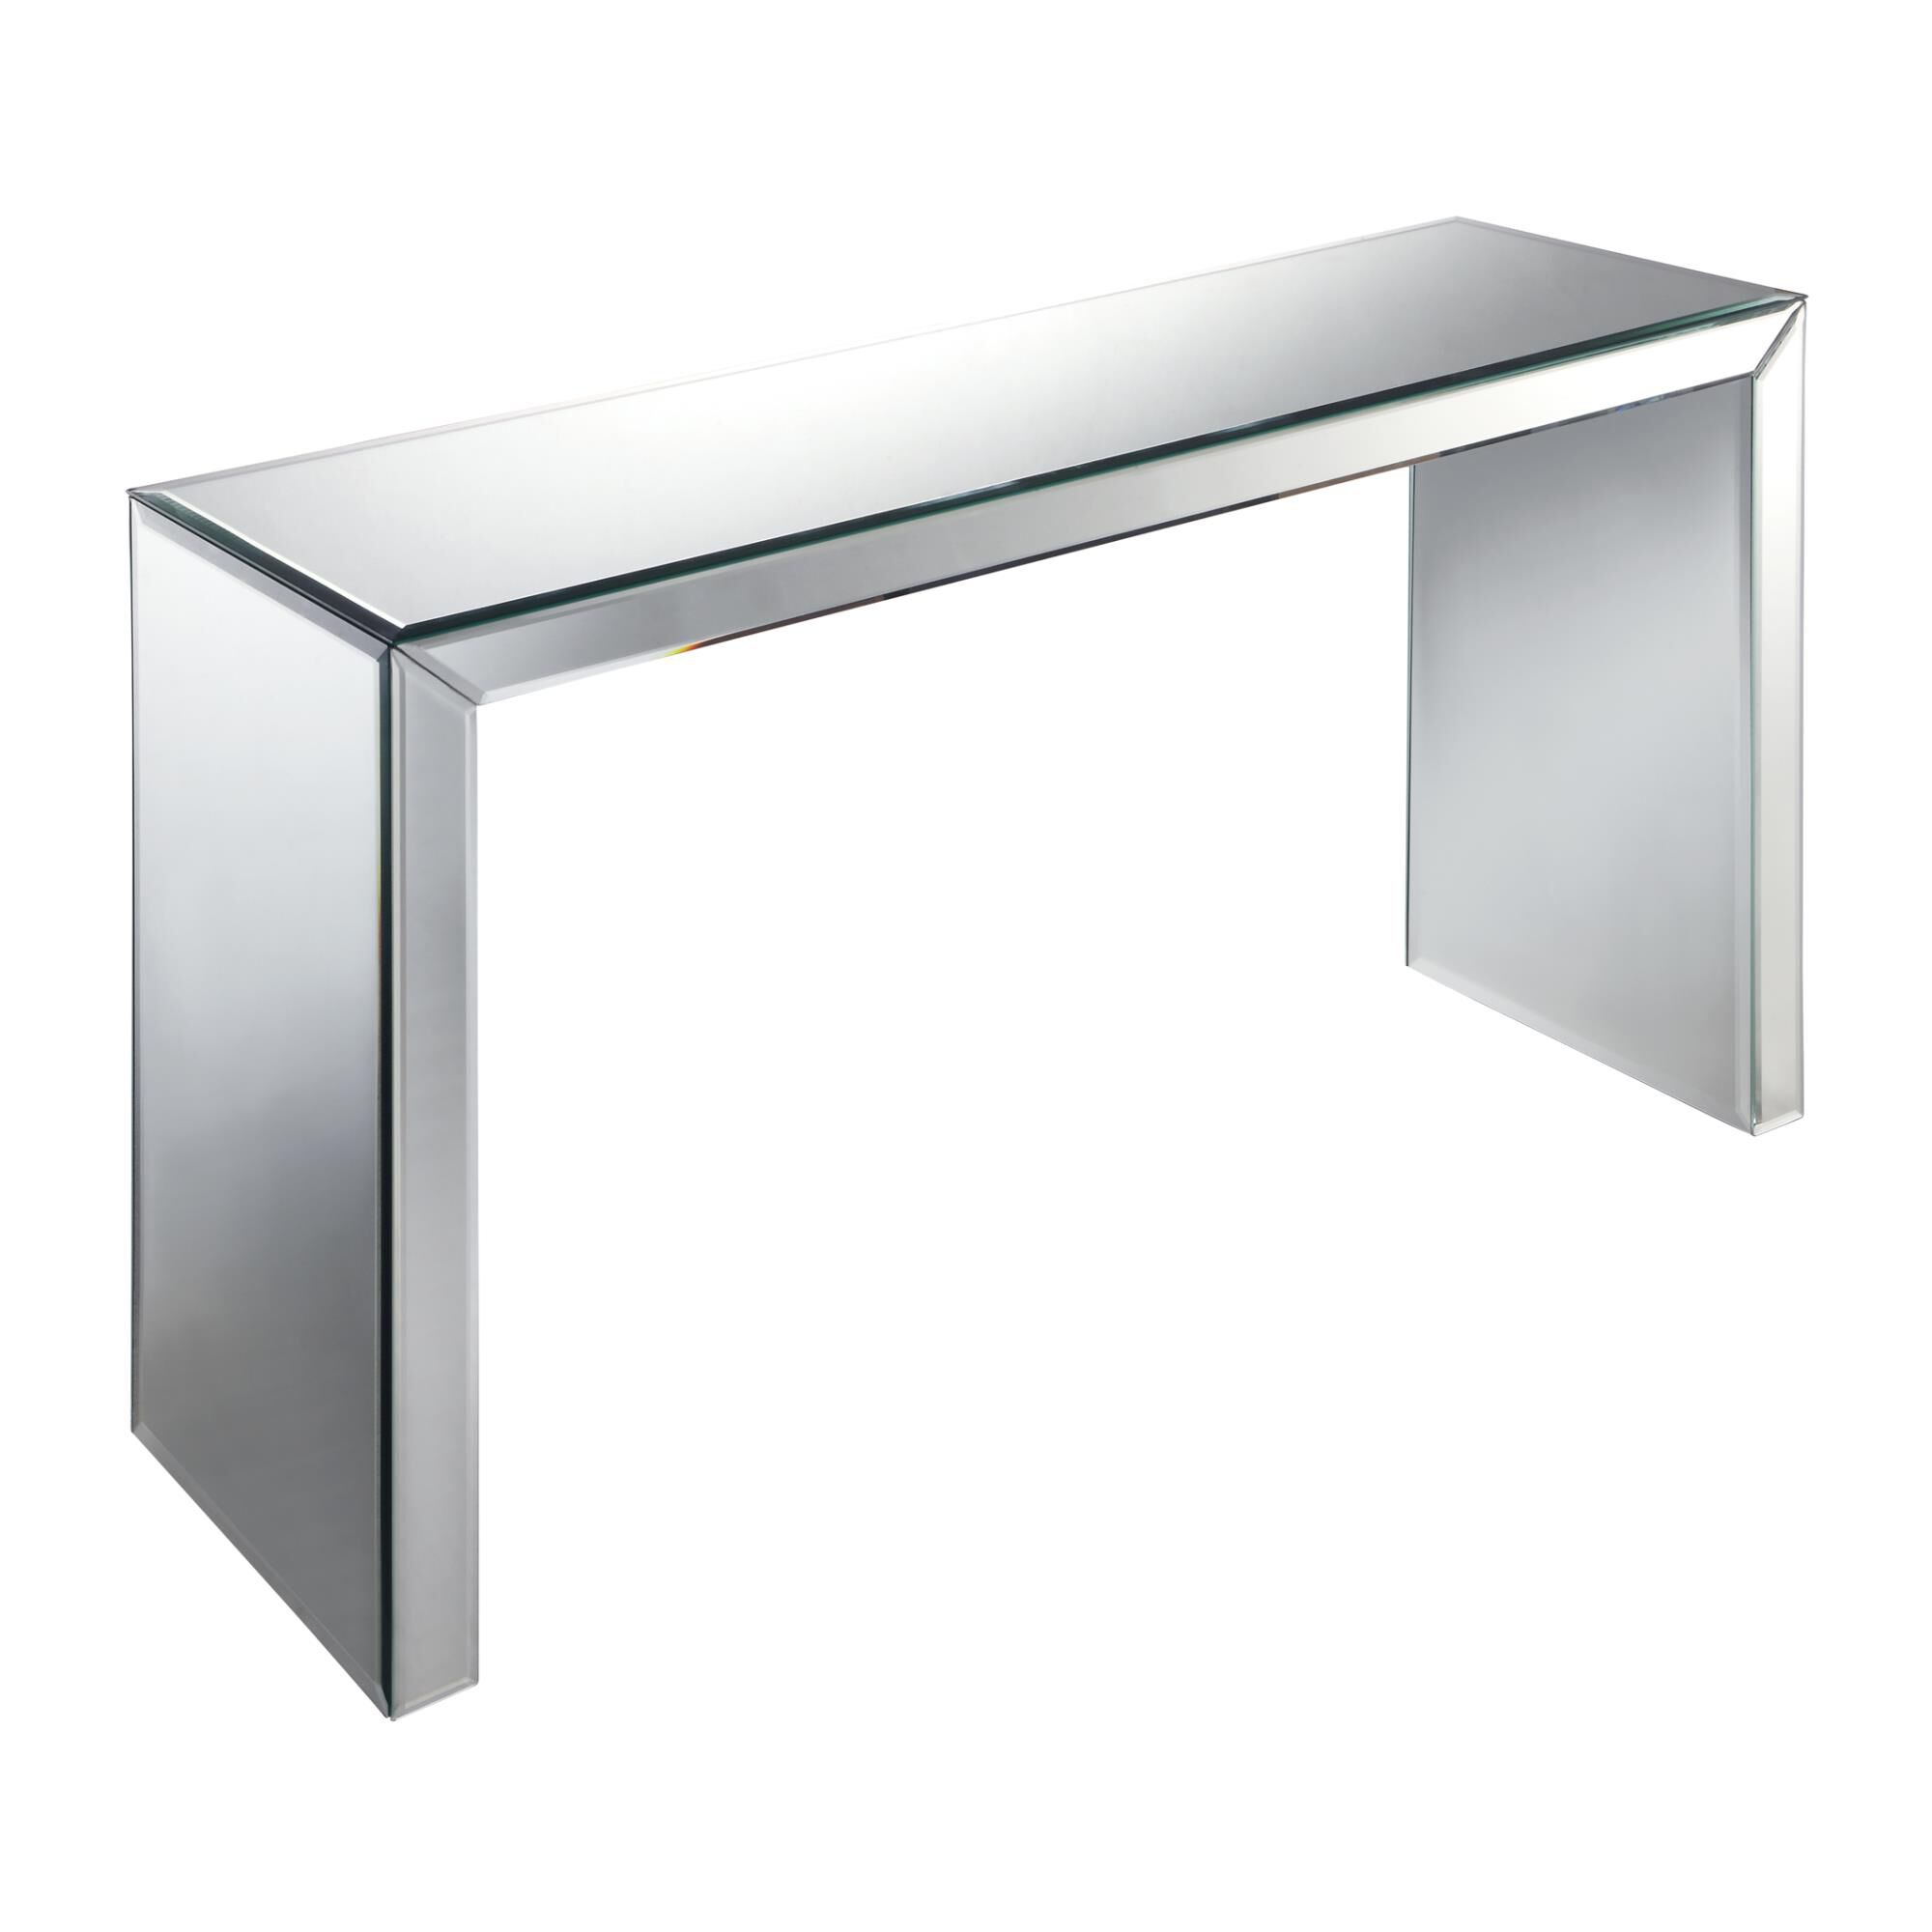 Sterling Industries Matinee Console Table Matinee 6043518 Modern Contemporary